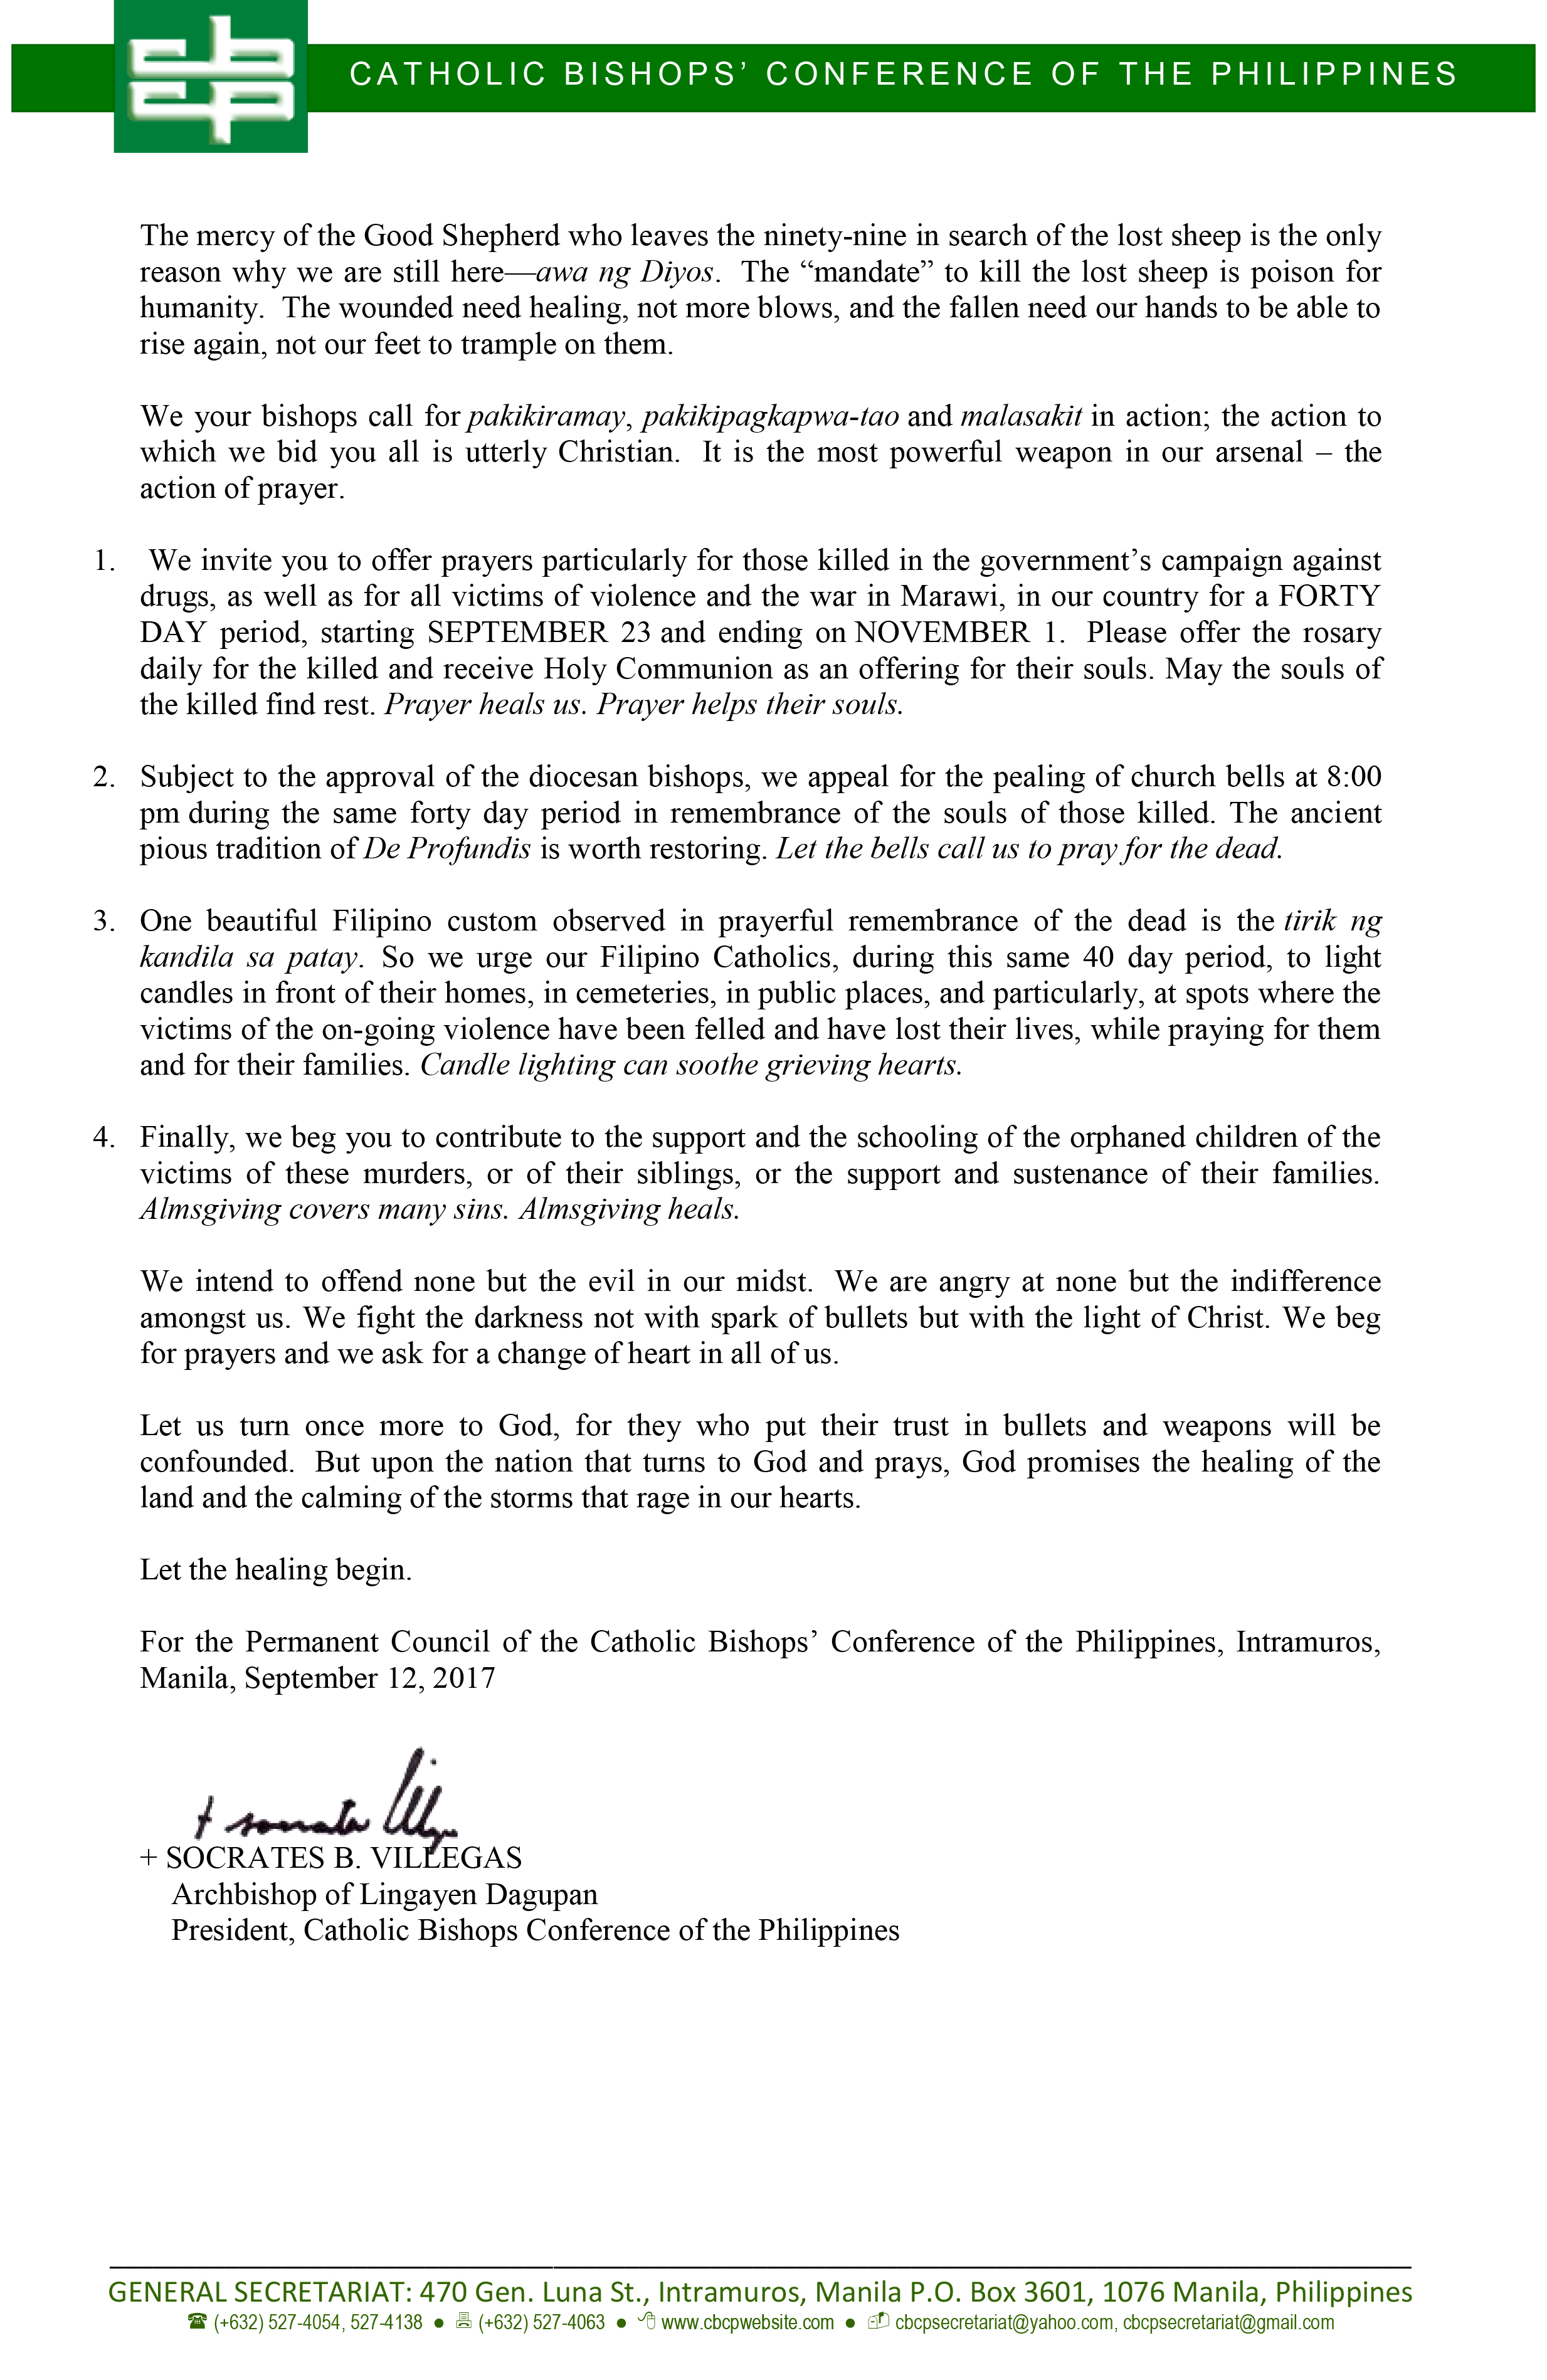 CBCP Pastoral - Lord Heal Our Land-2.jpg